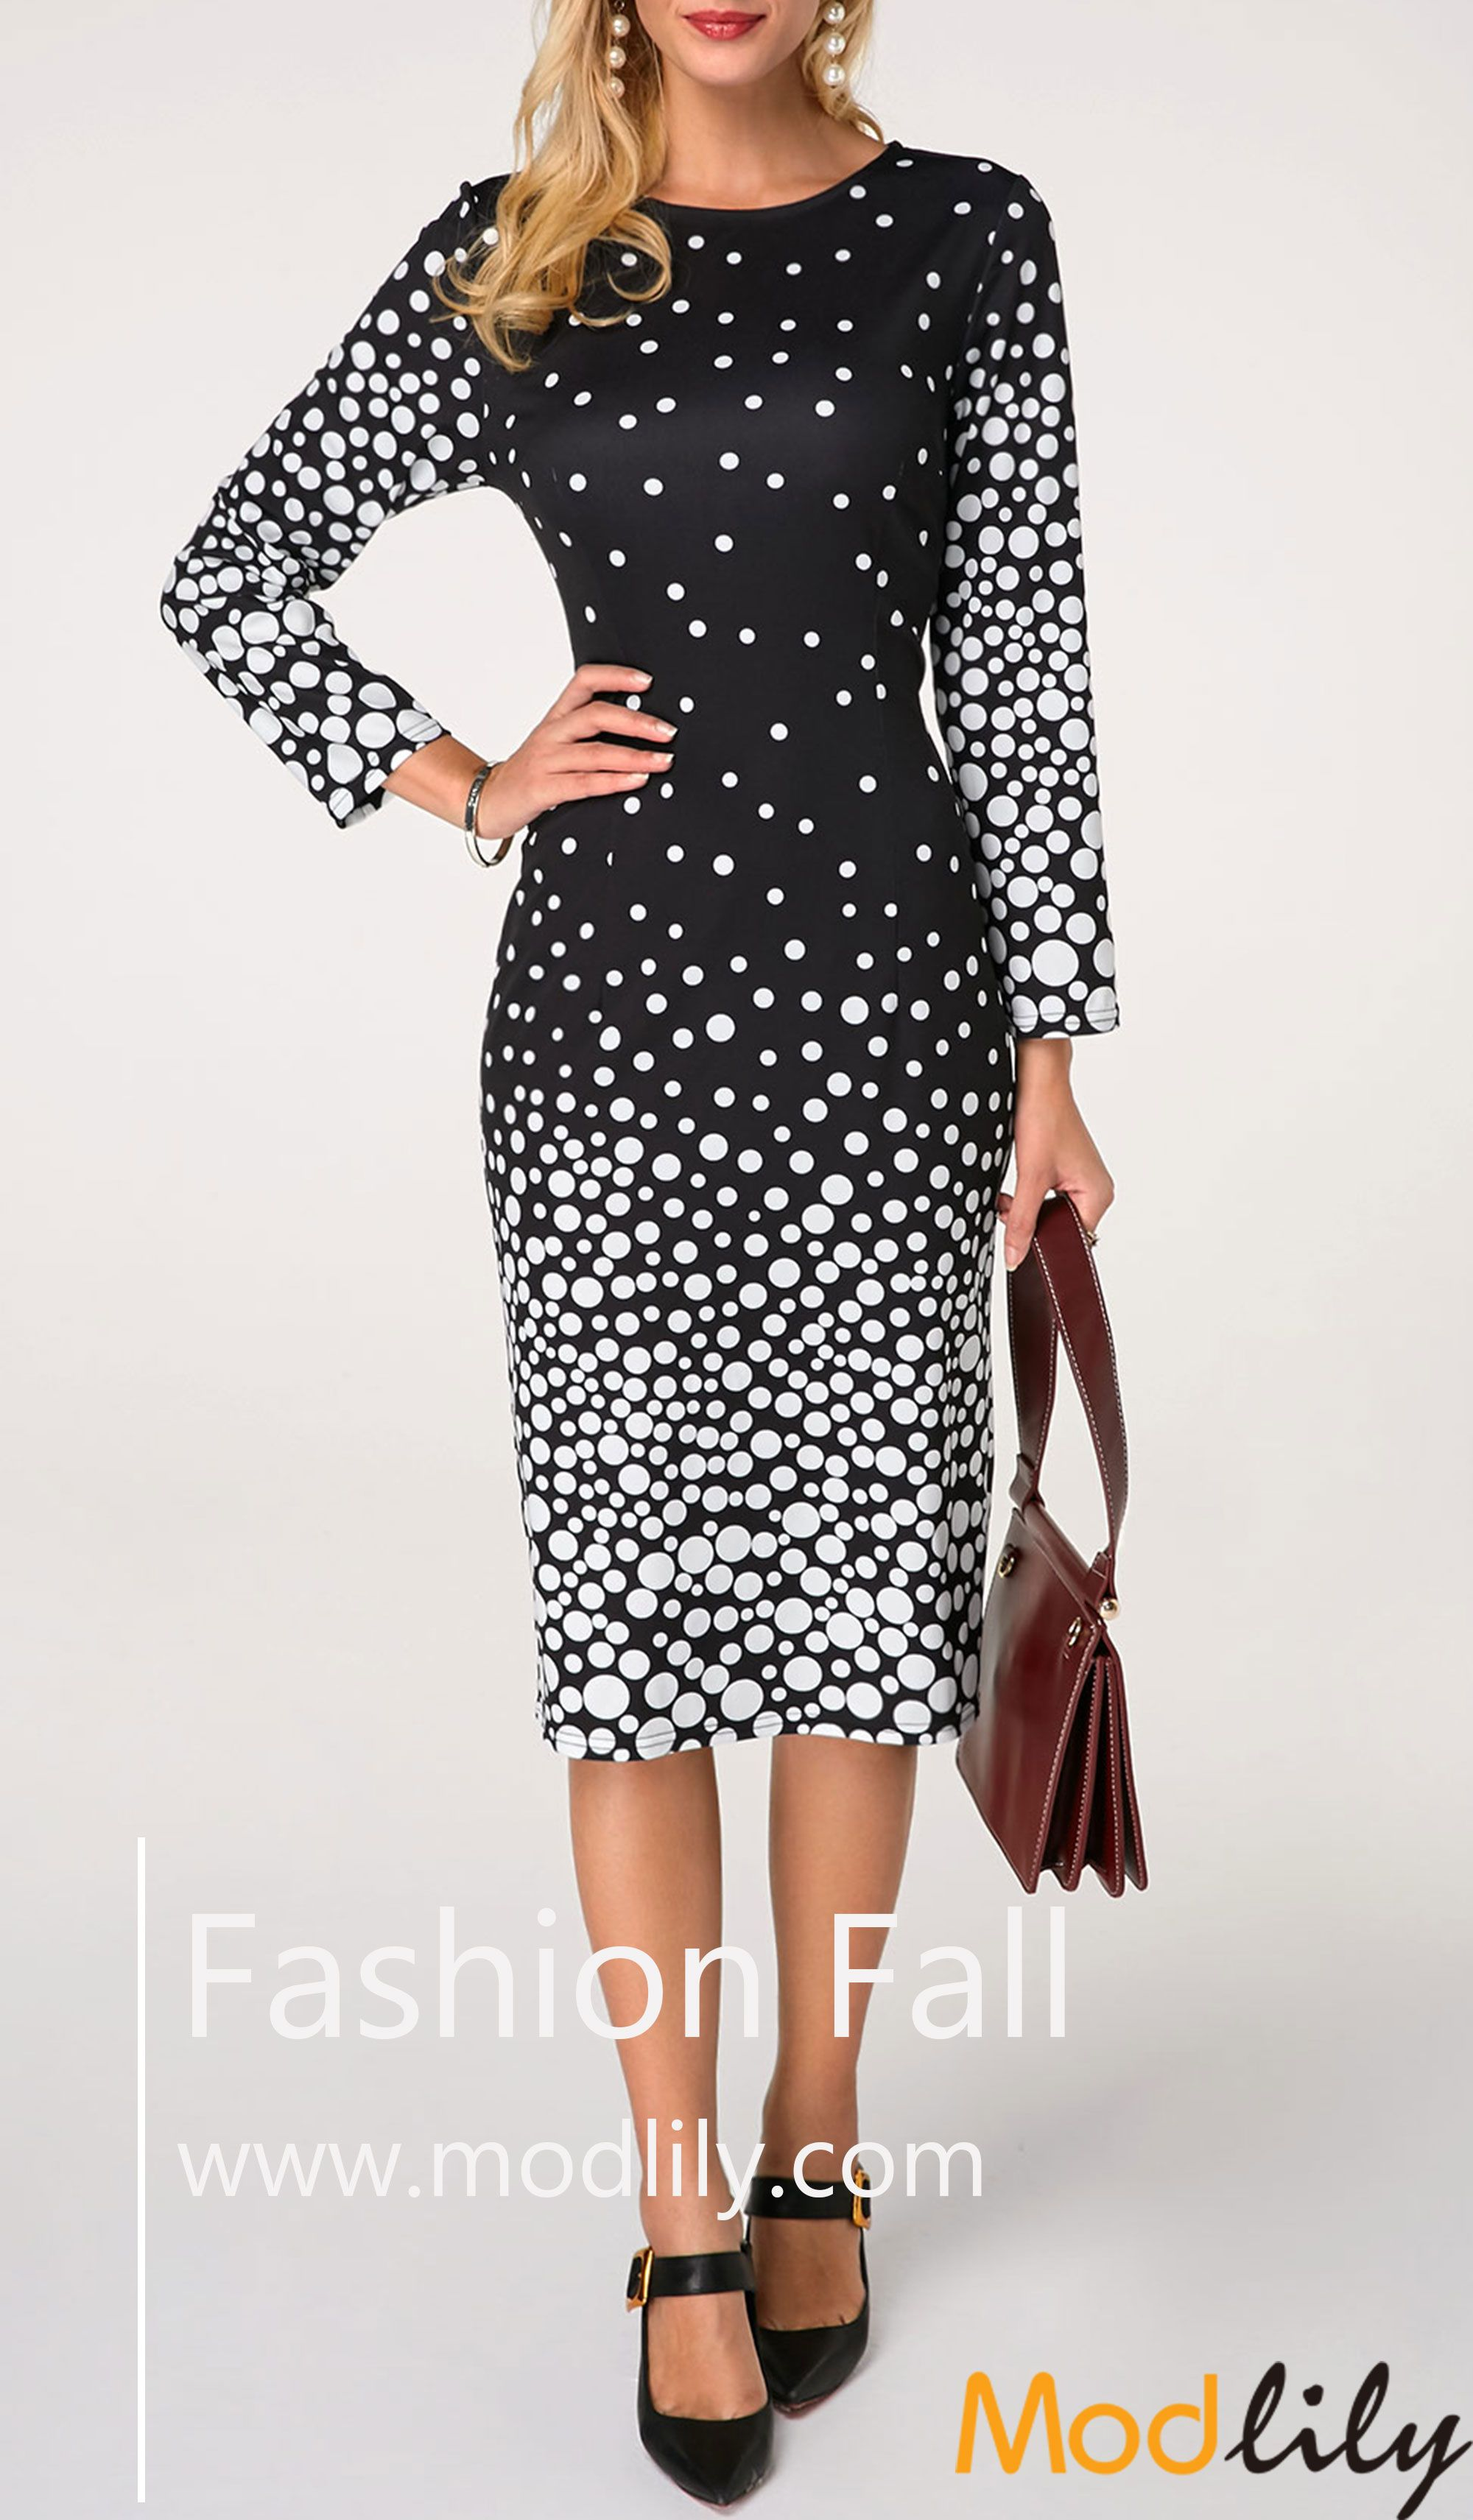 2d611b820cc1 Round Neck Polka Dot Print Midi Dress On Sale At Modlilly. Free shipping.  It is a chance to extend your style of clothes. Action now.